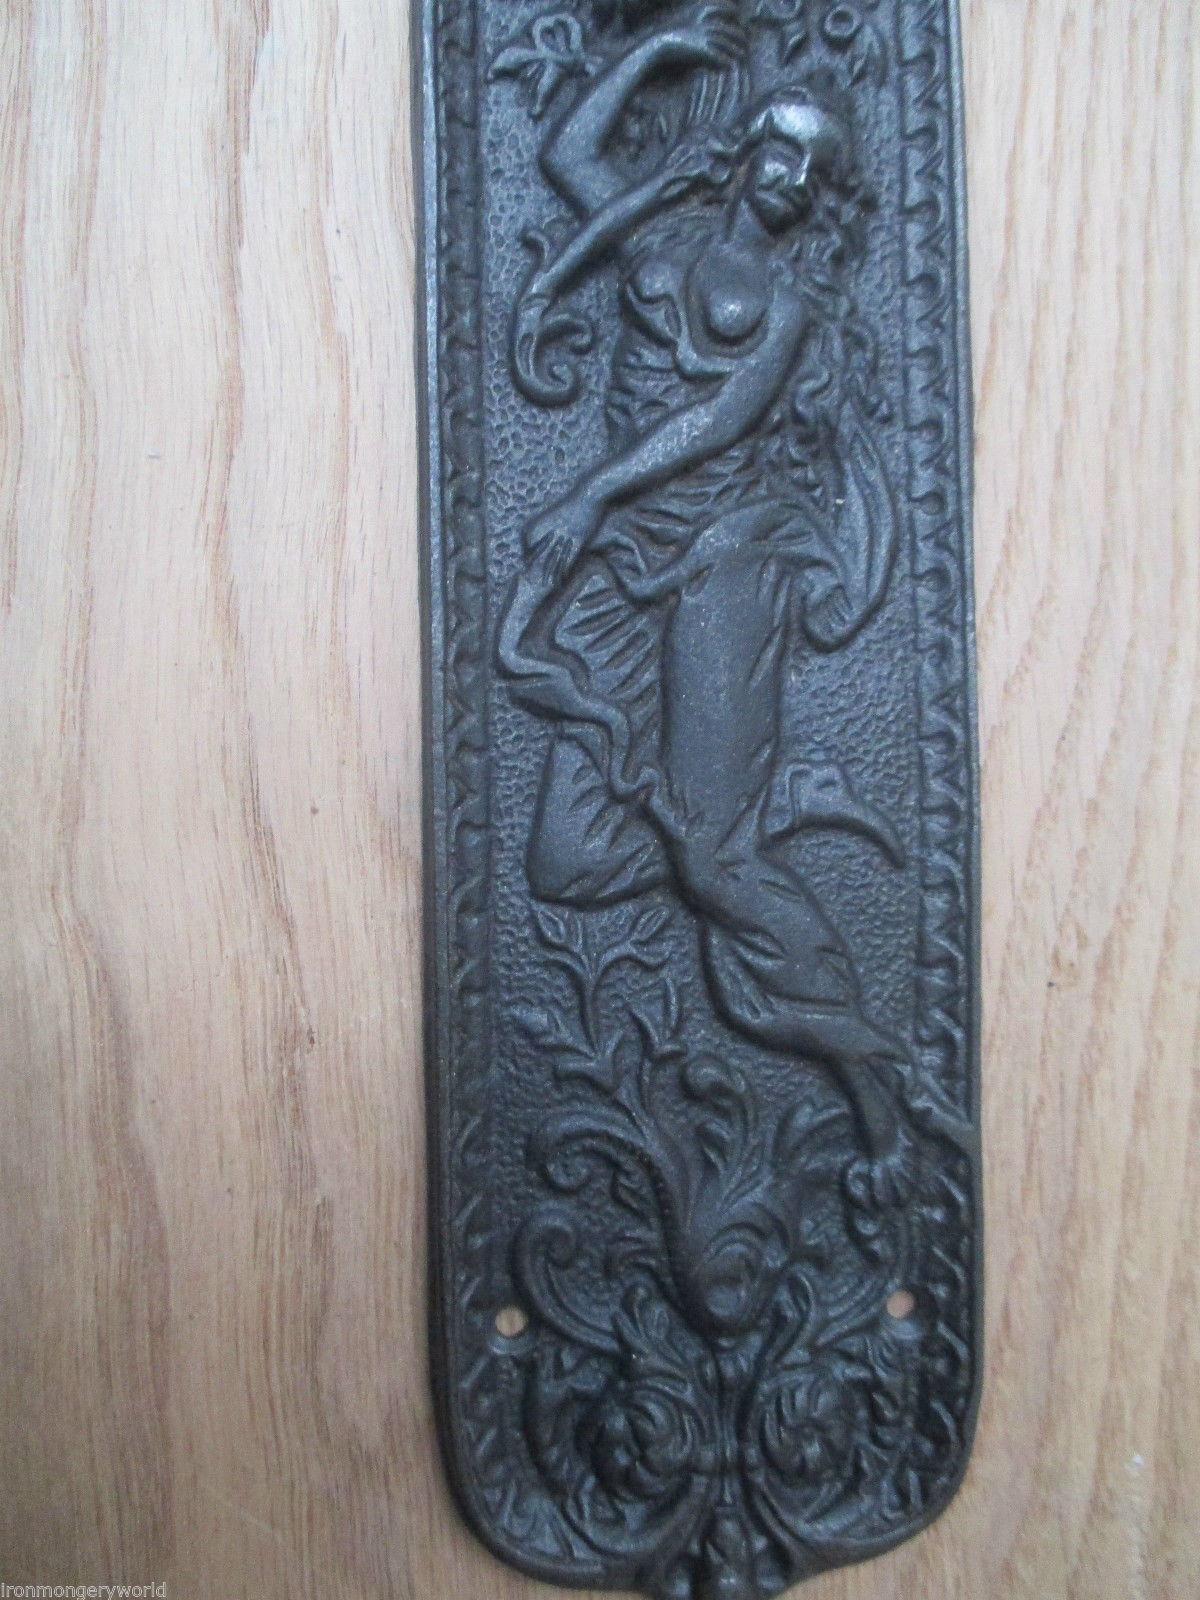 Cast Iron Decorative Ornate Mermaid Vintage Finger Plate